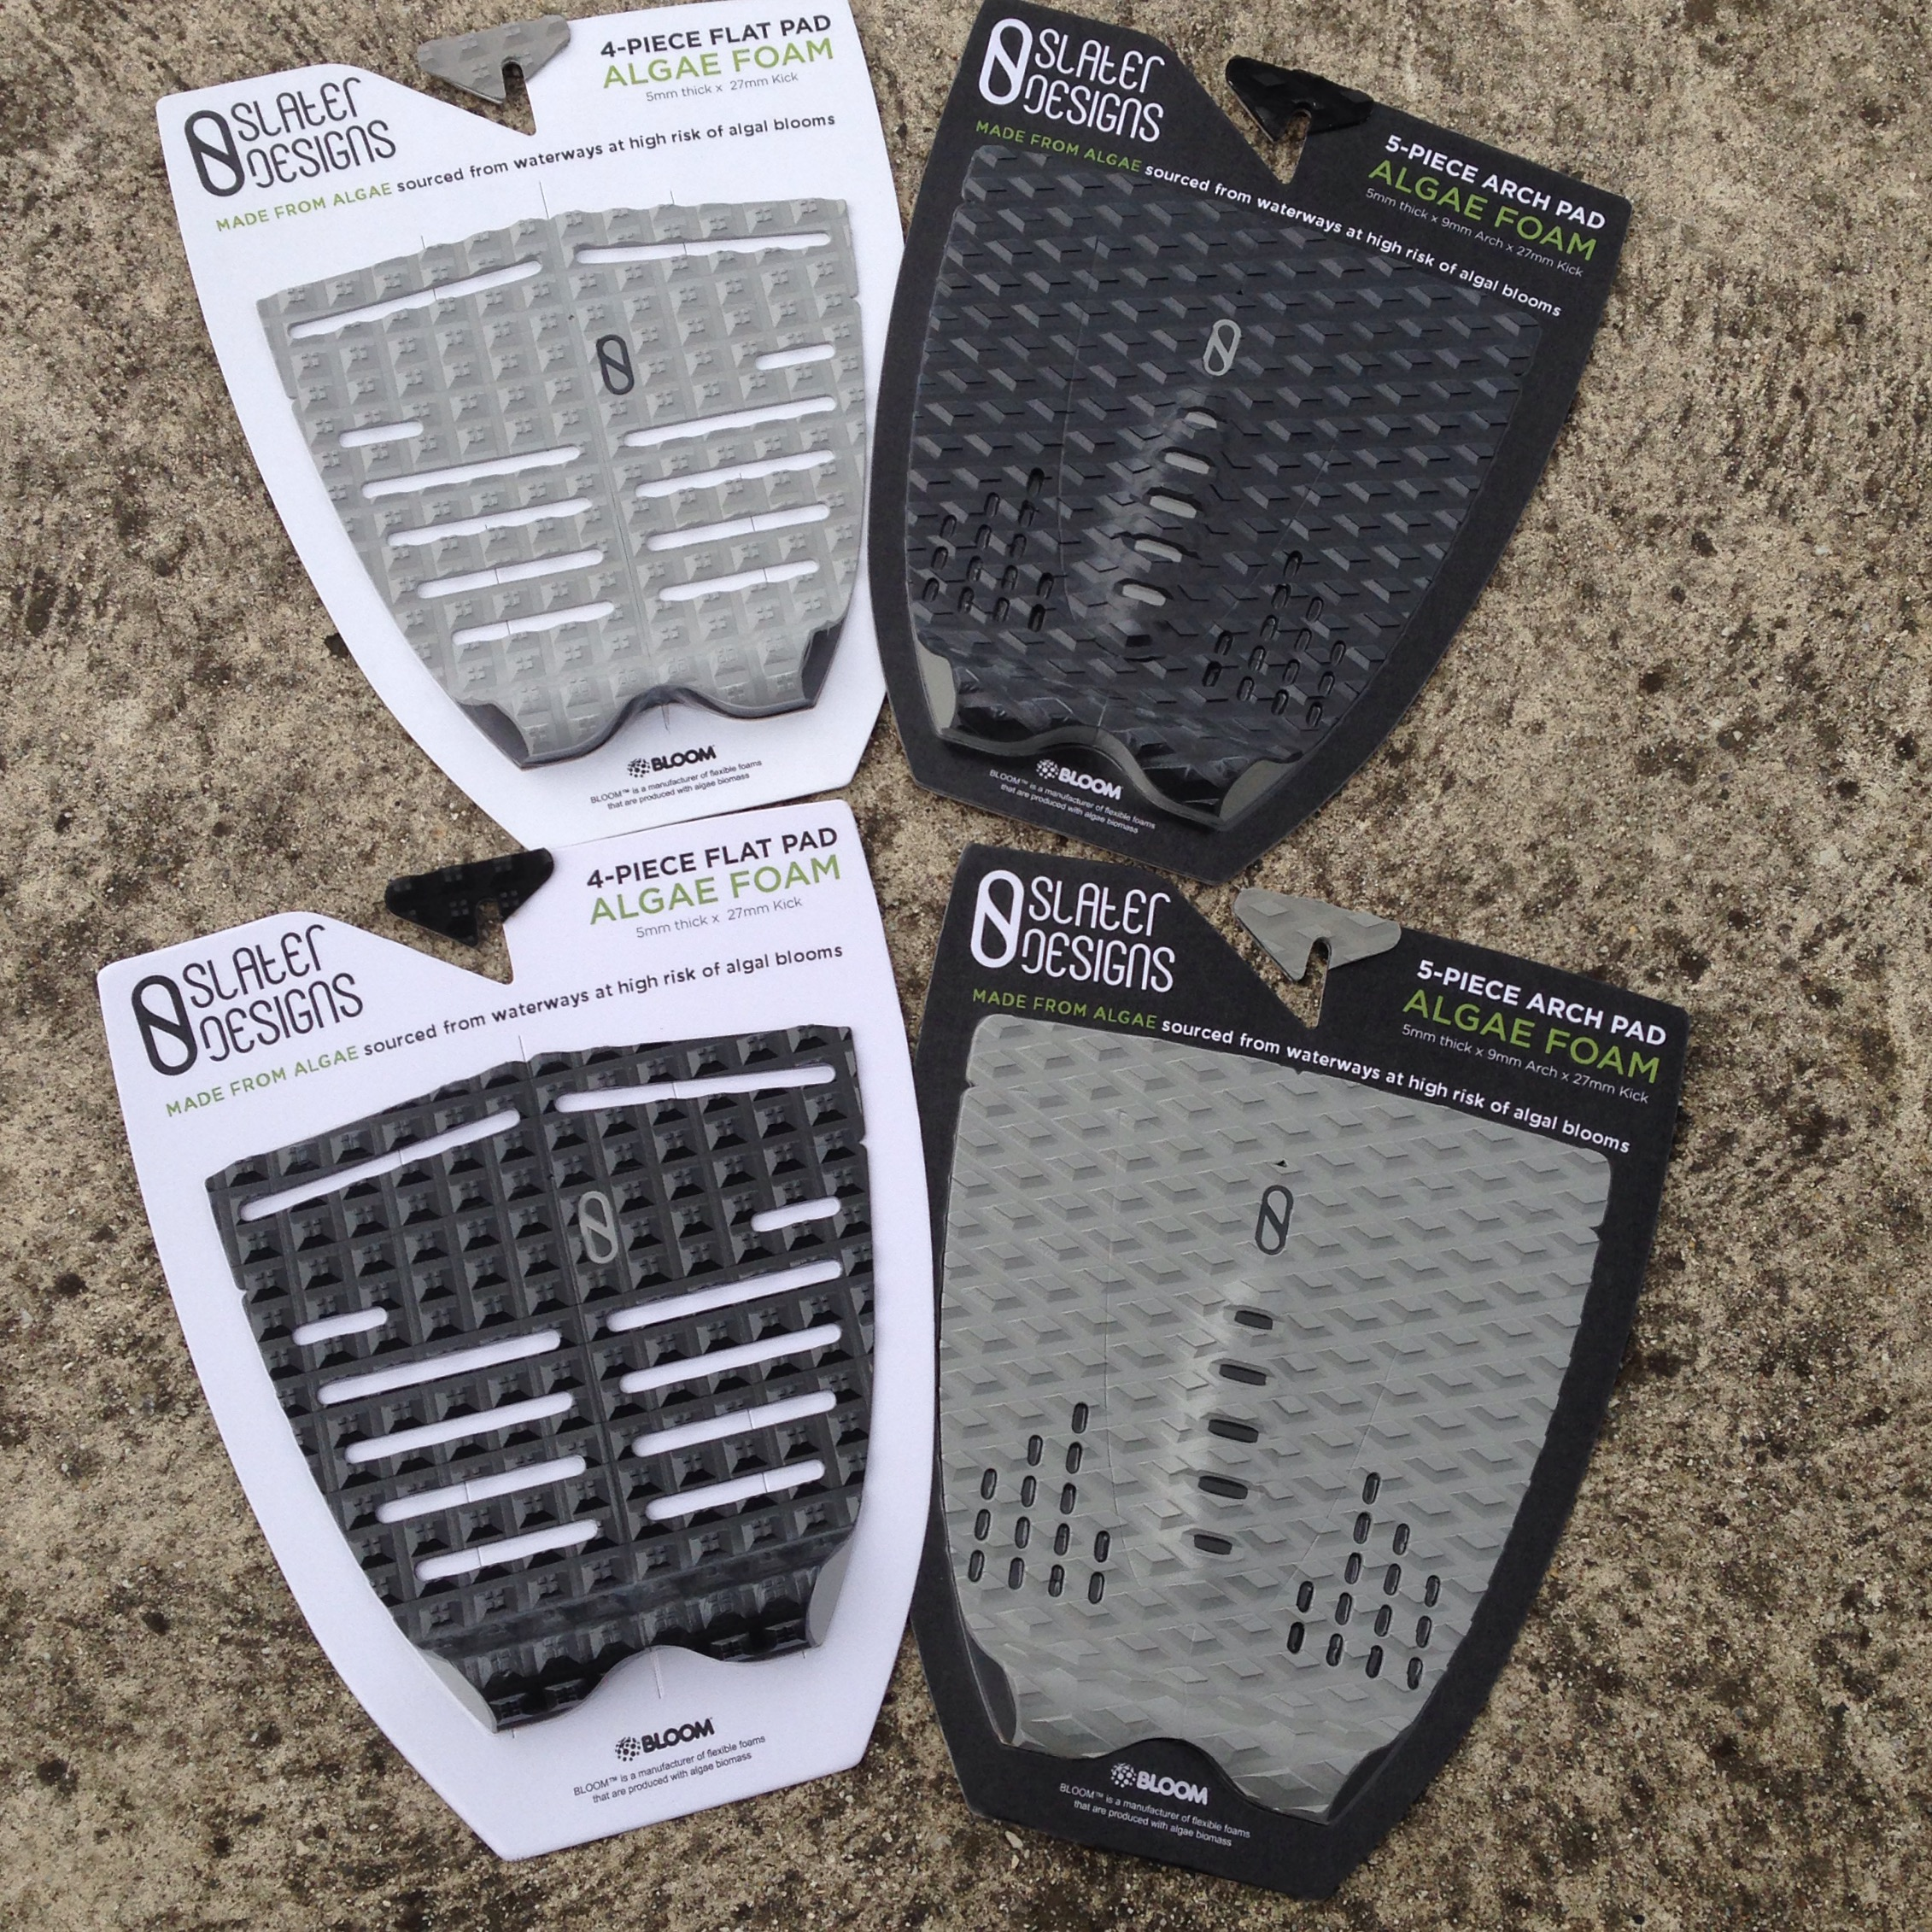 Slater Designs Tail Pads